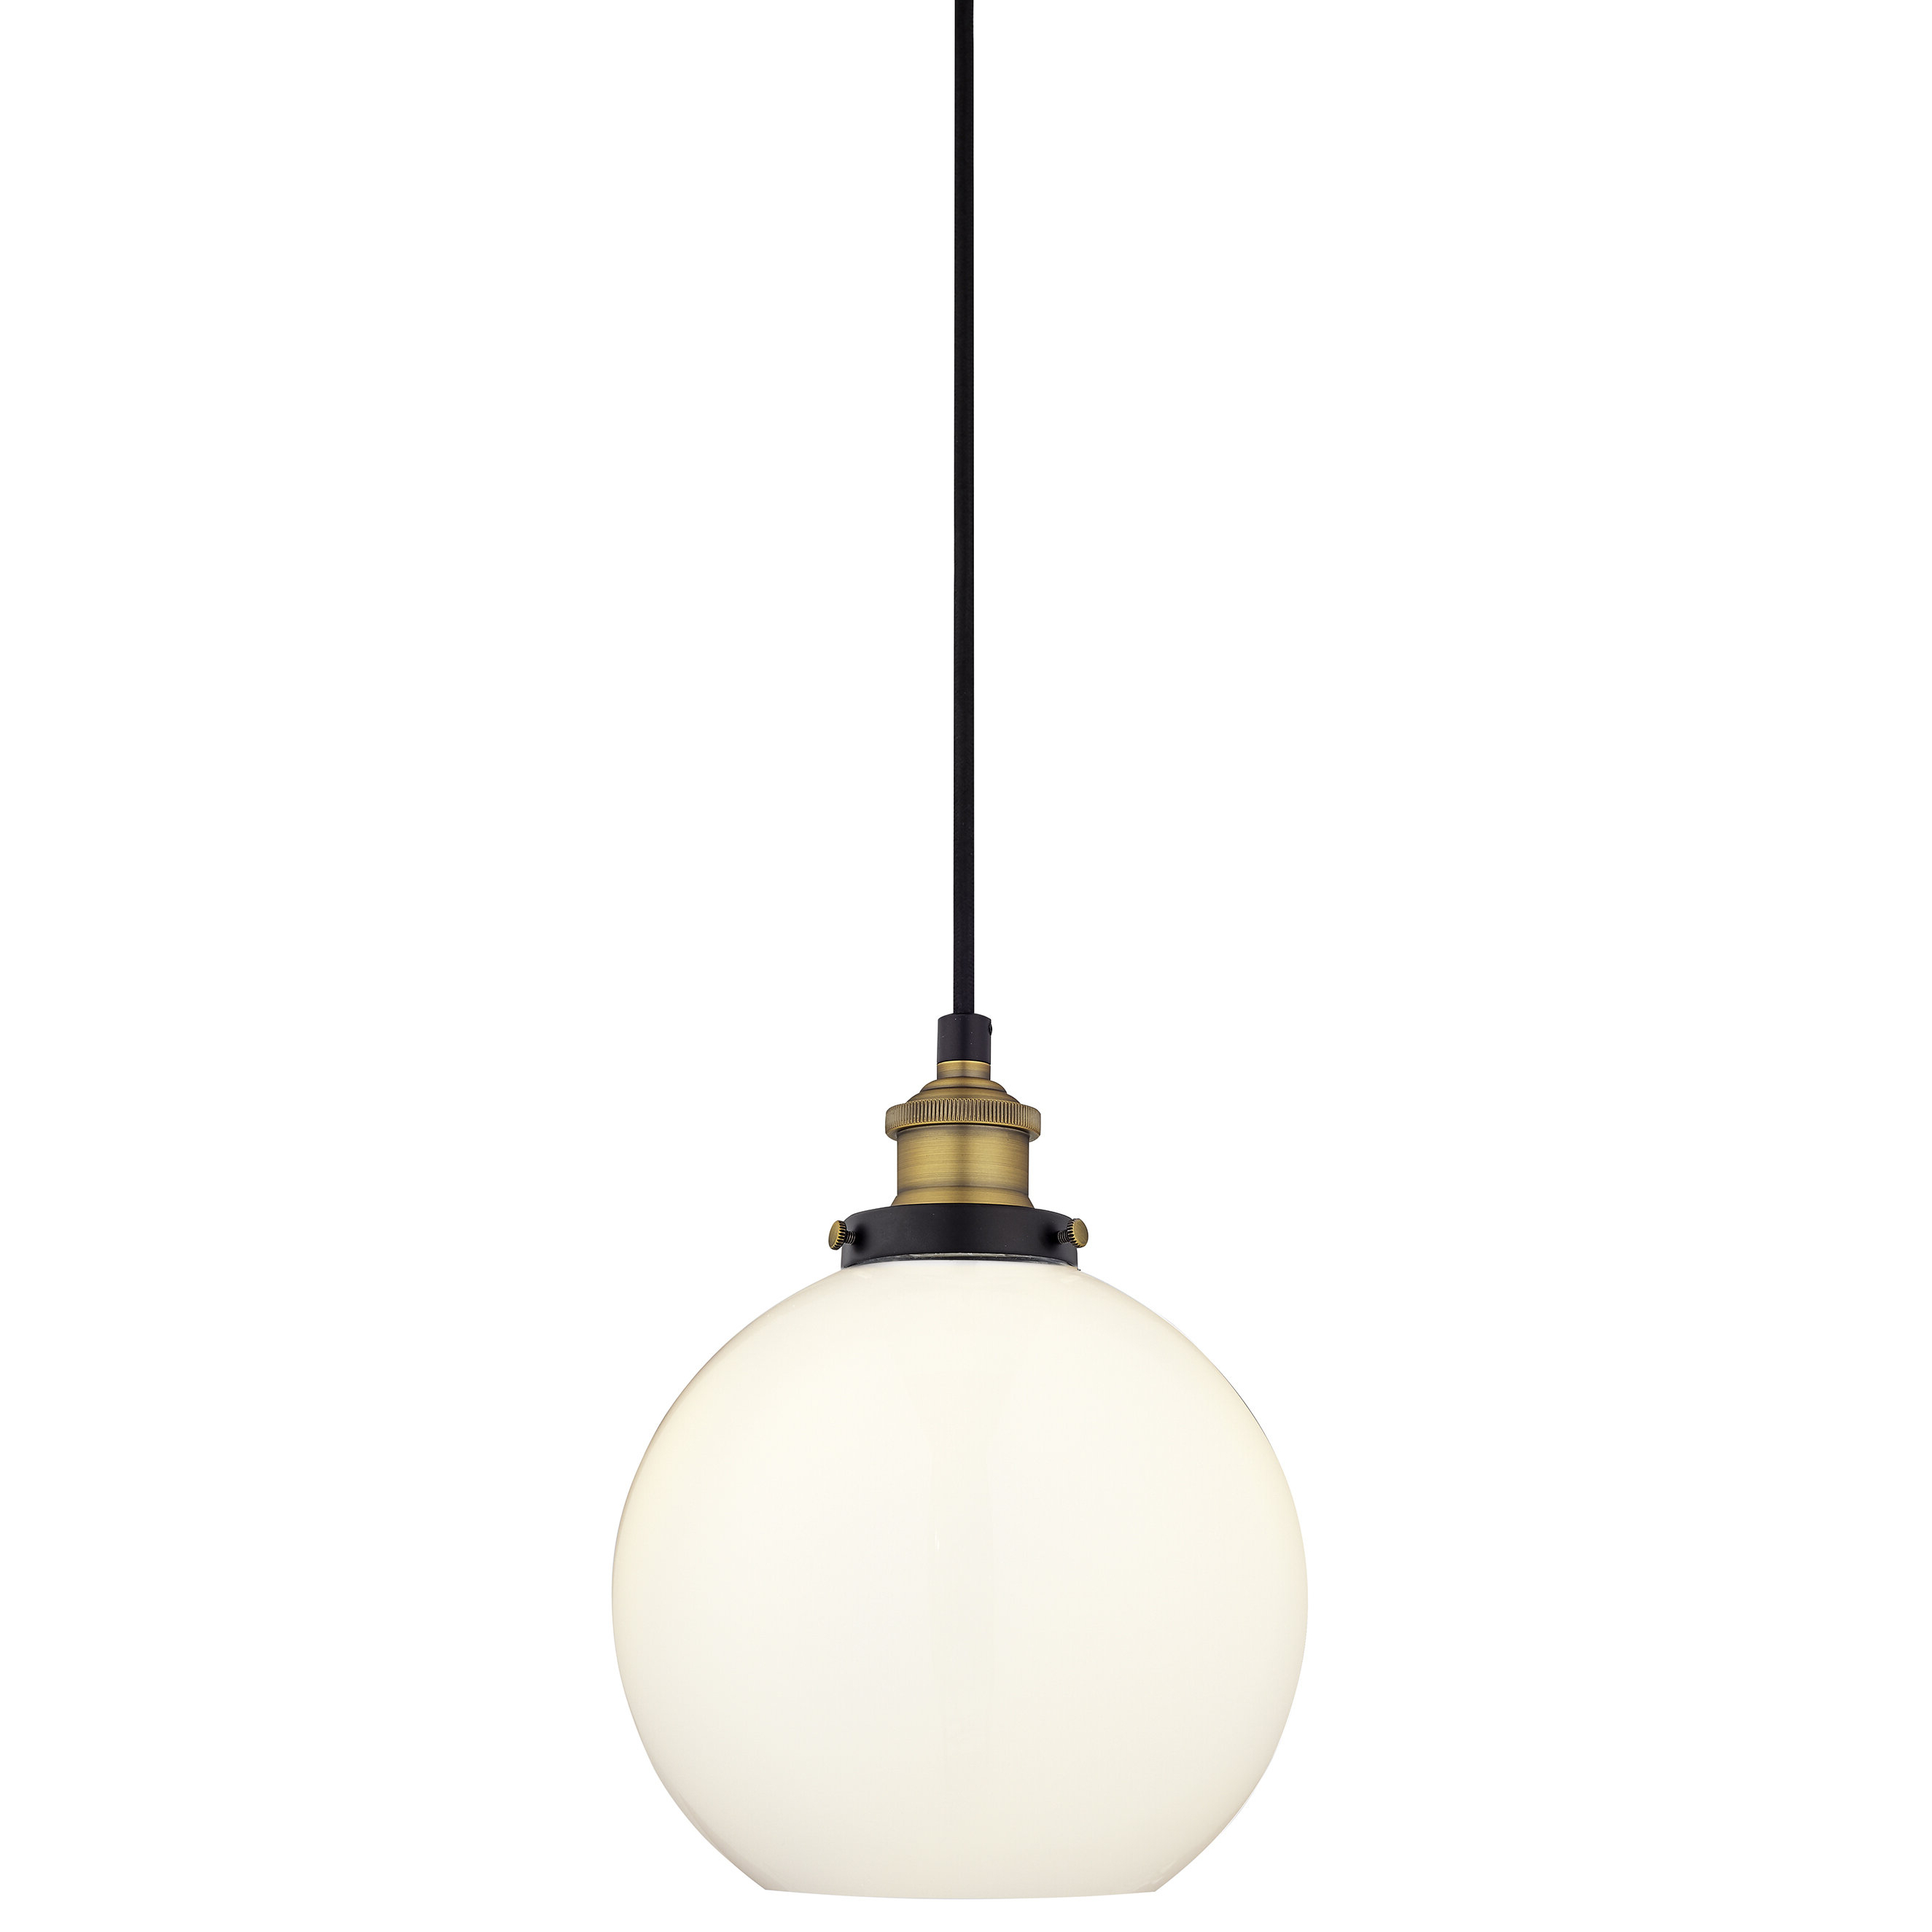 1 Light Geometric Globe Pendants With Regard To 2020 Dunneback 1 Light Single Globe Pendant (View 6 of 20)